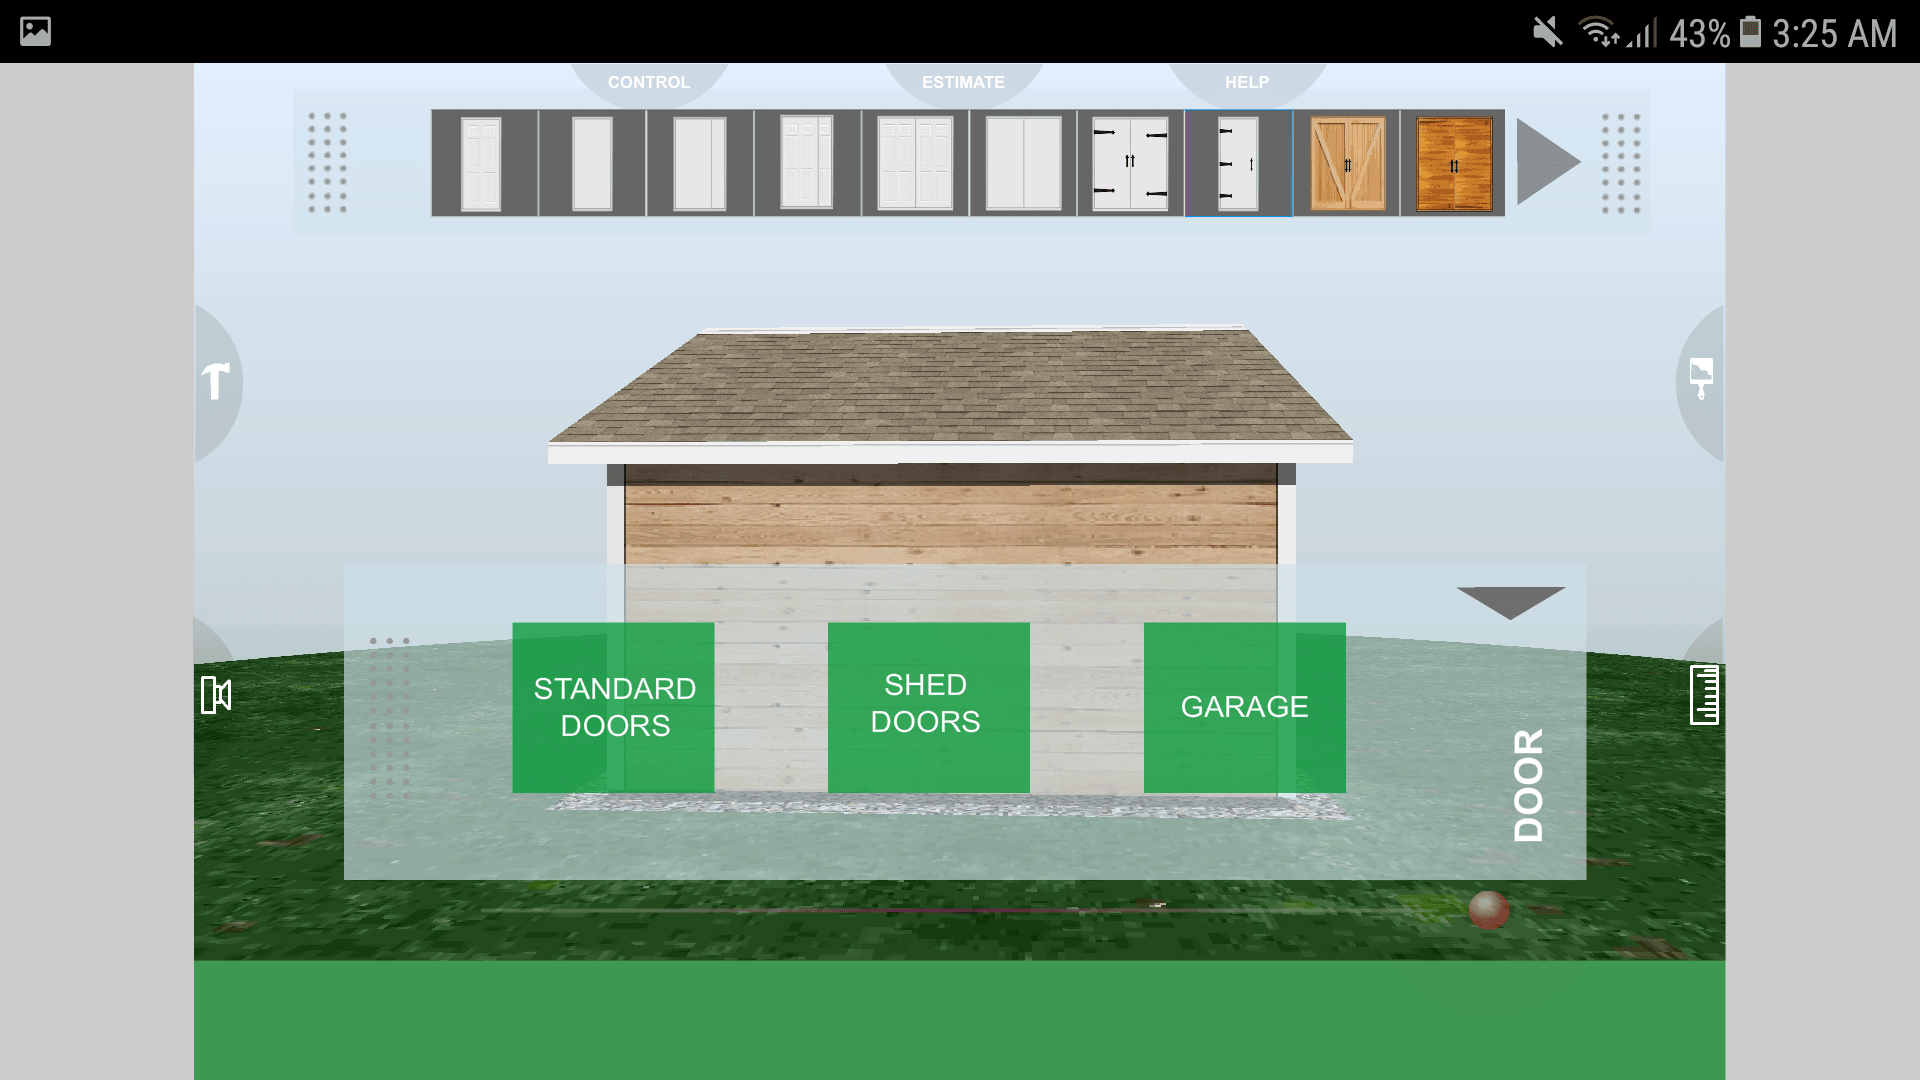 5 top shed design software options free and paid 2018 for Garage building software